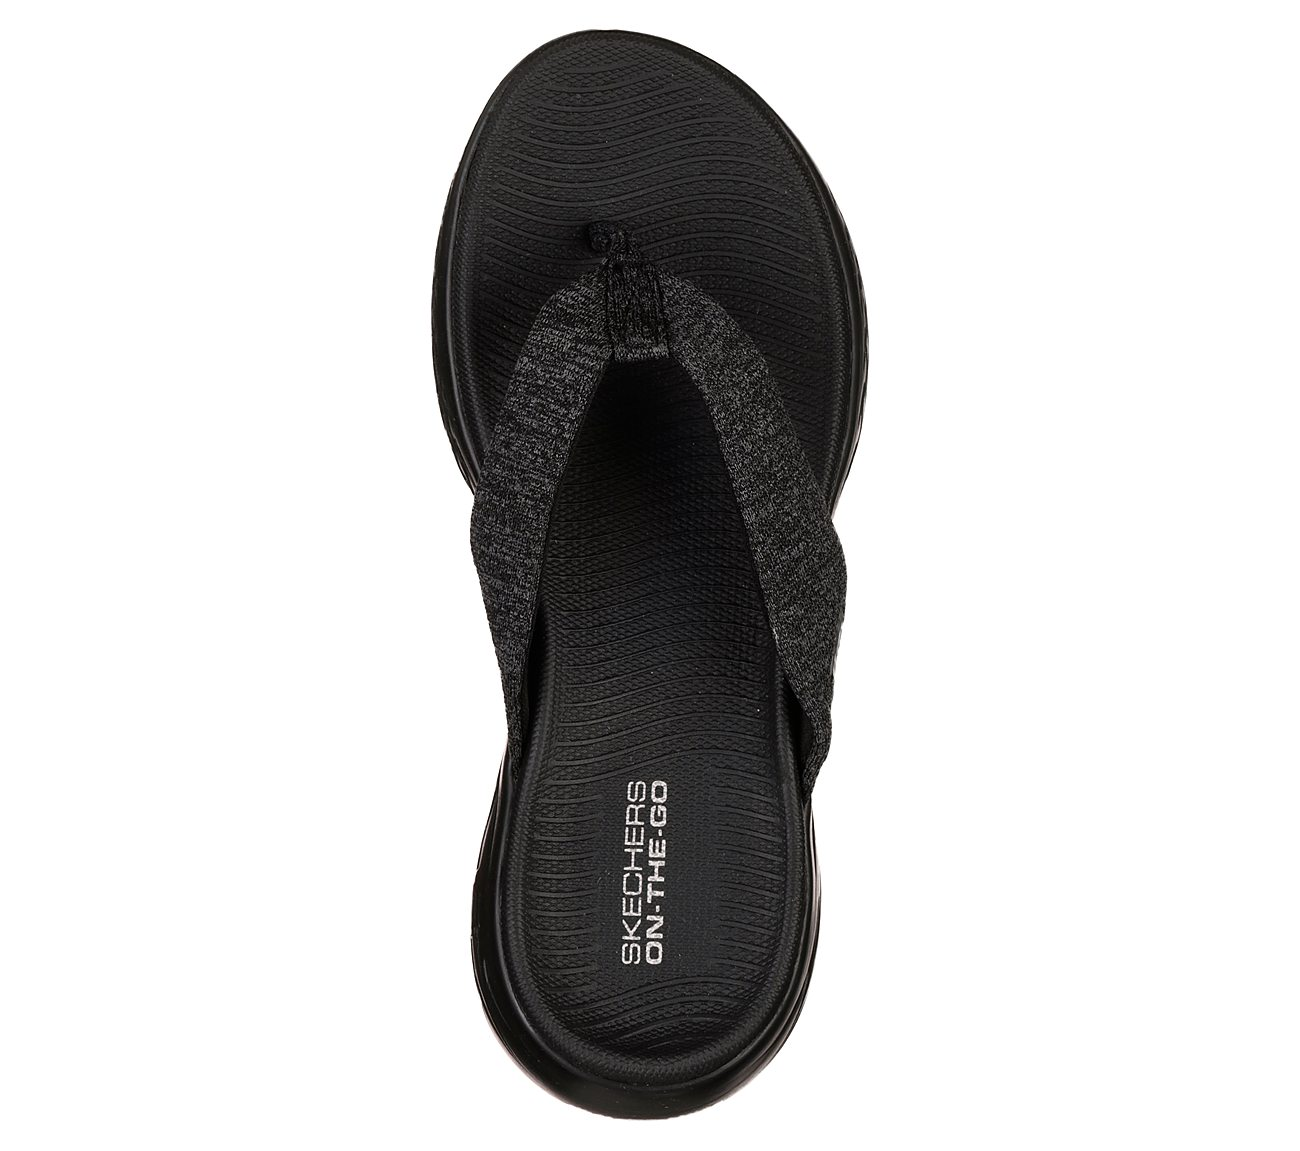 Buy SKECHERS Skechers On the GO 600 - Preferred Skechers Performance Shoes  only $45.00